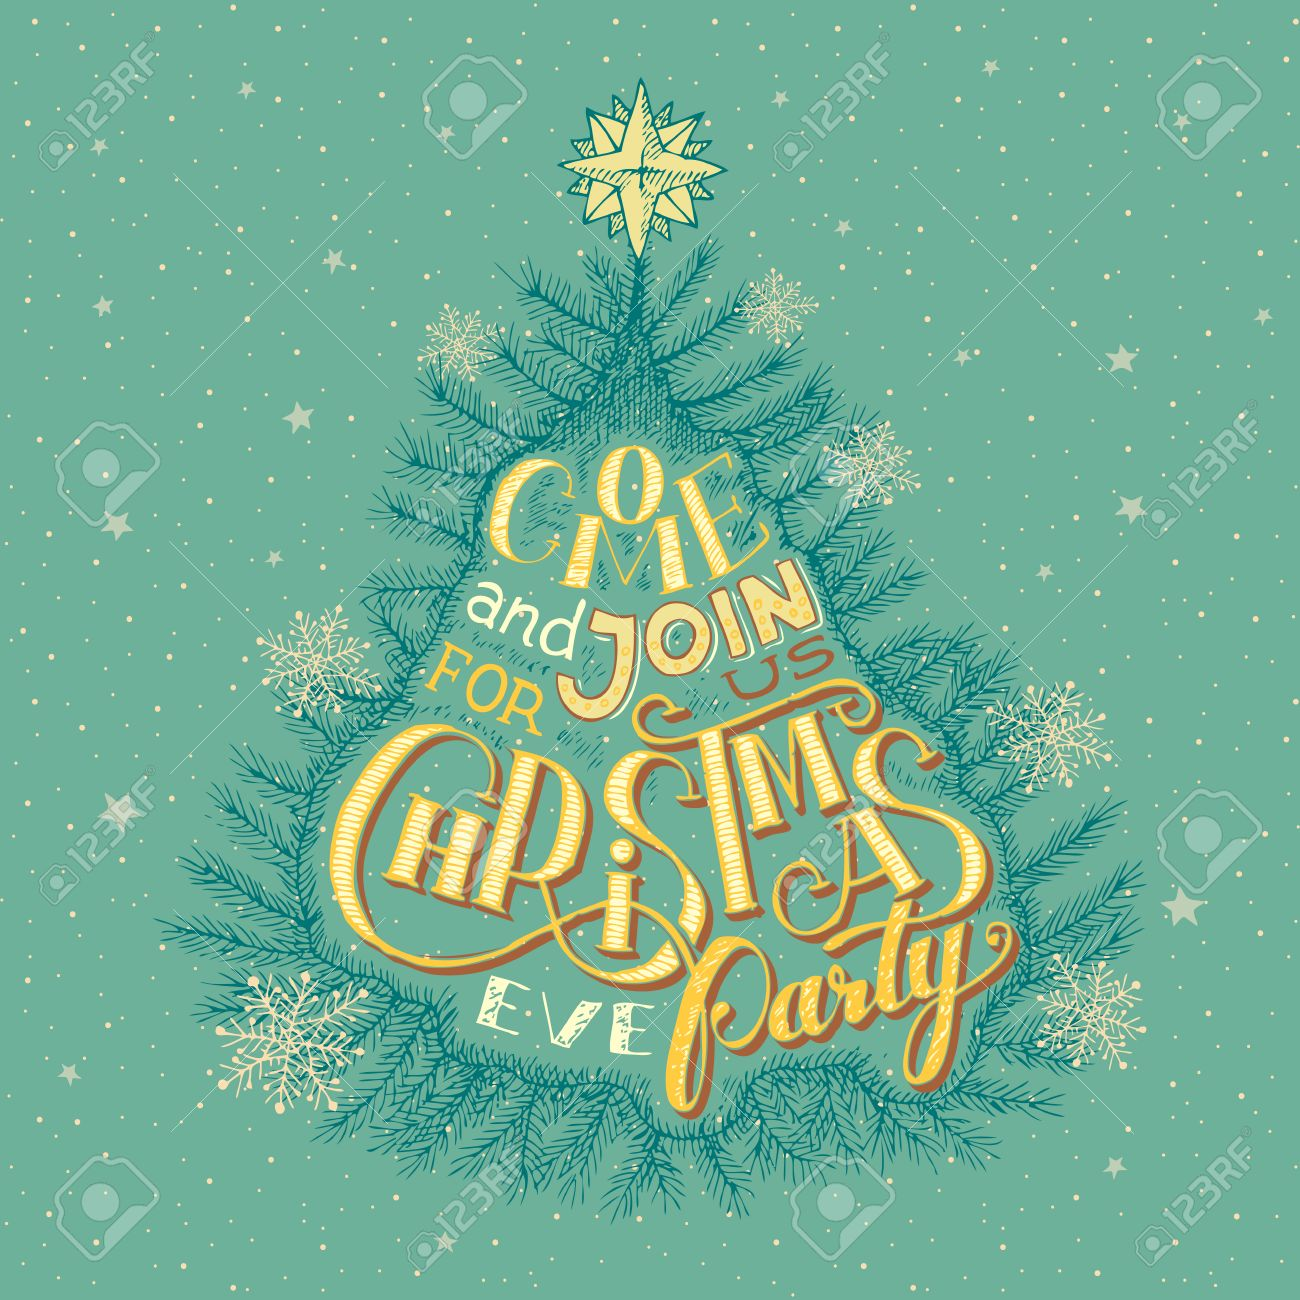 Vintage Christmas Eve Party Invitation Hand-lettering Royalty Free ...